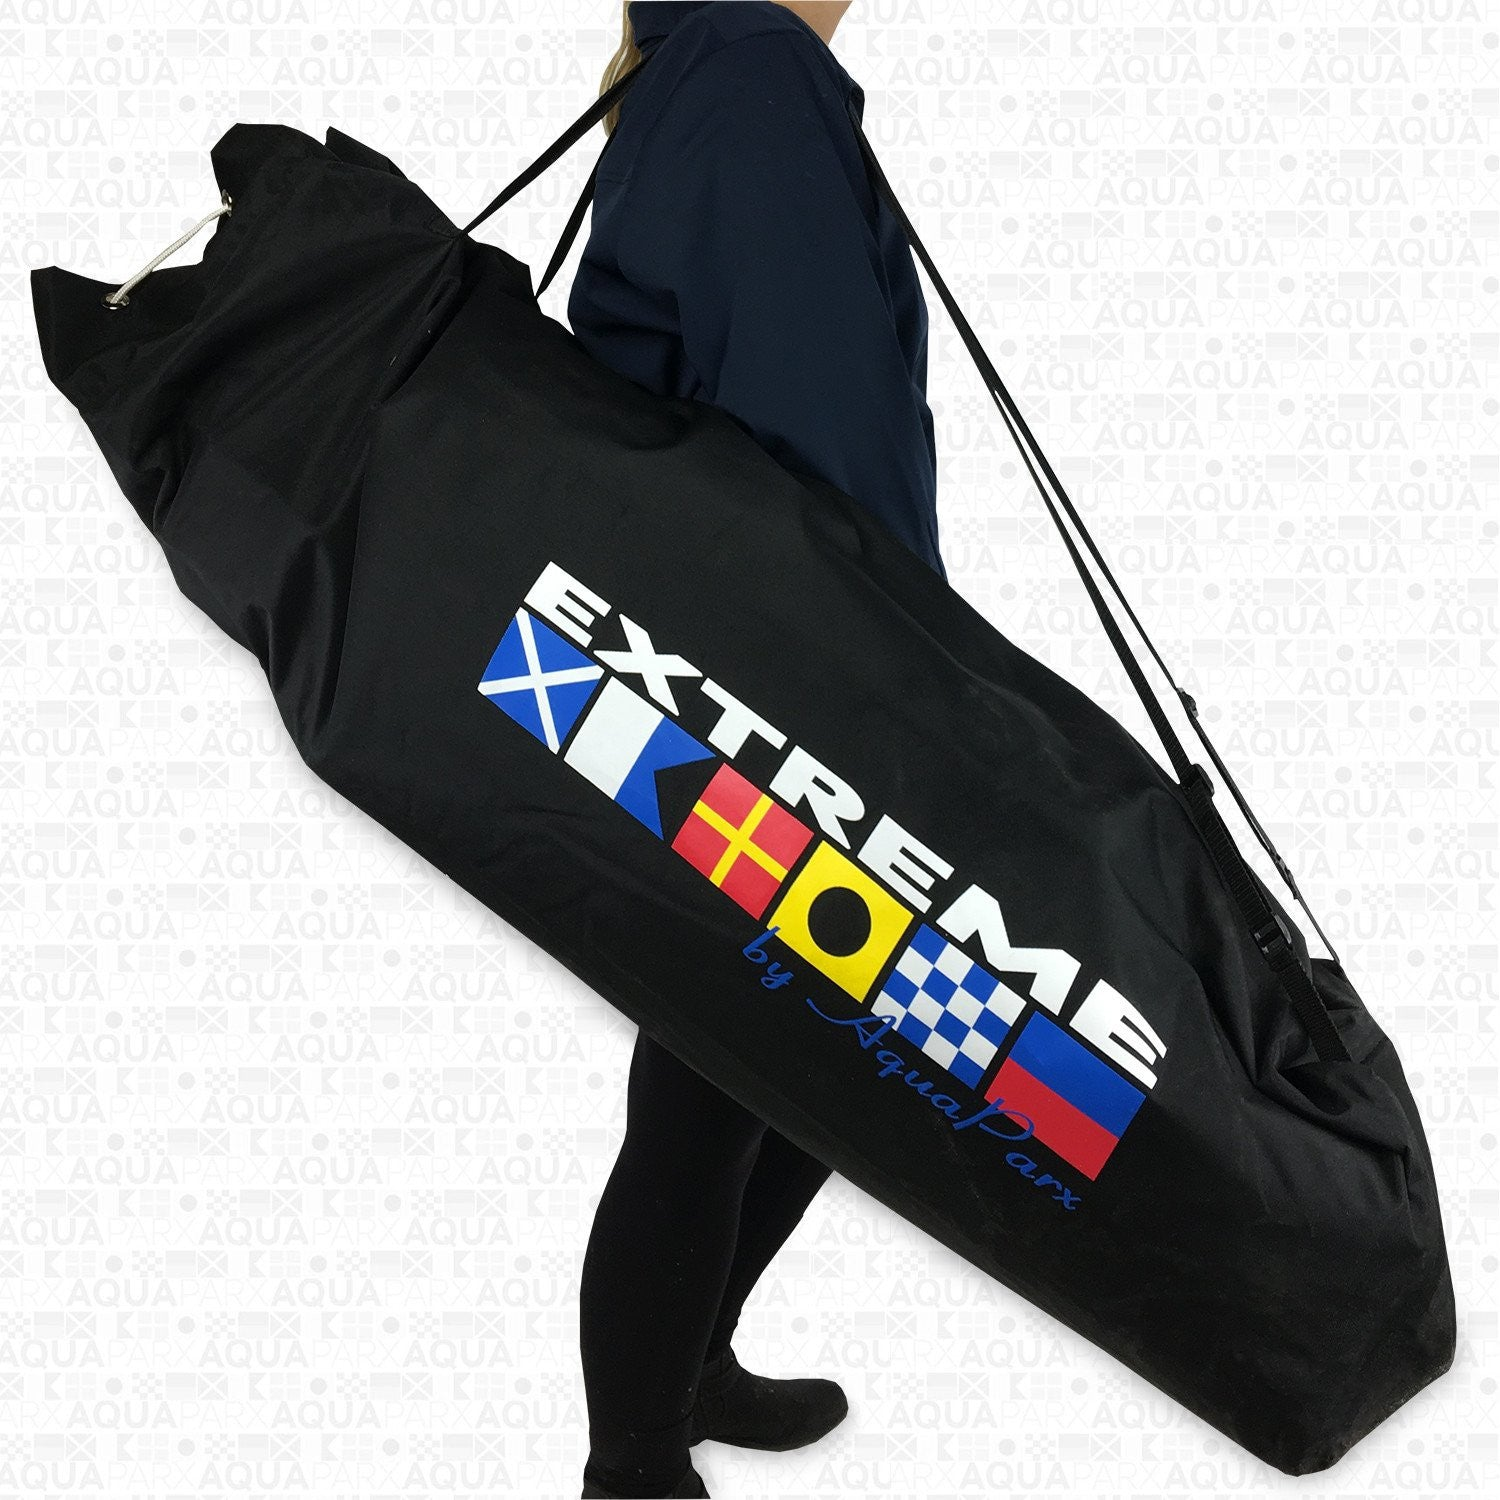 Carrying bag for 1.2hp Outboard motor